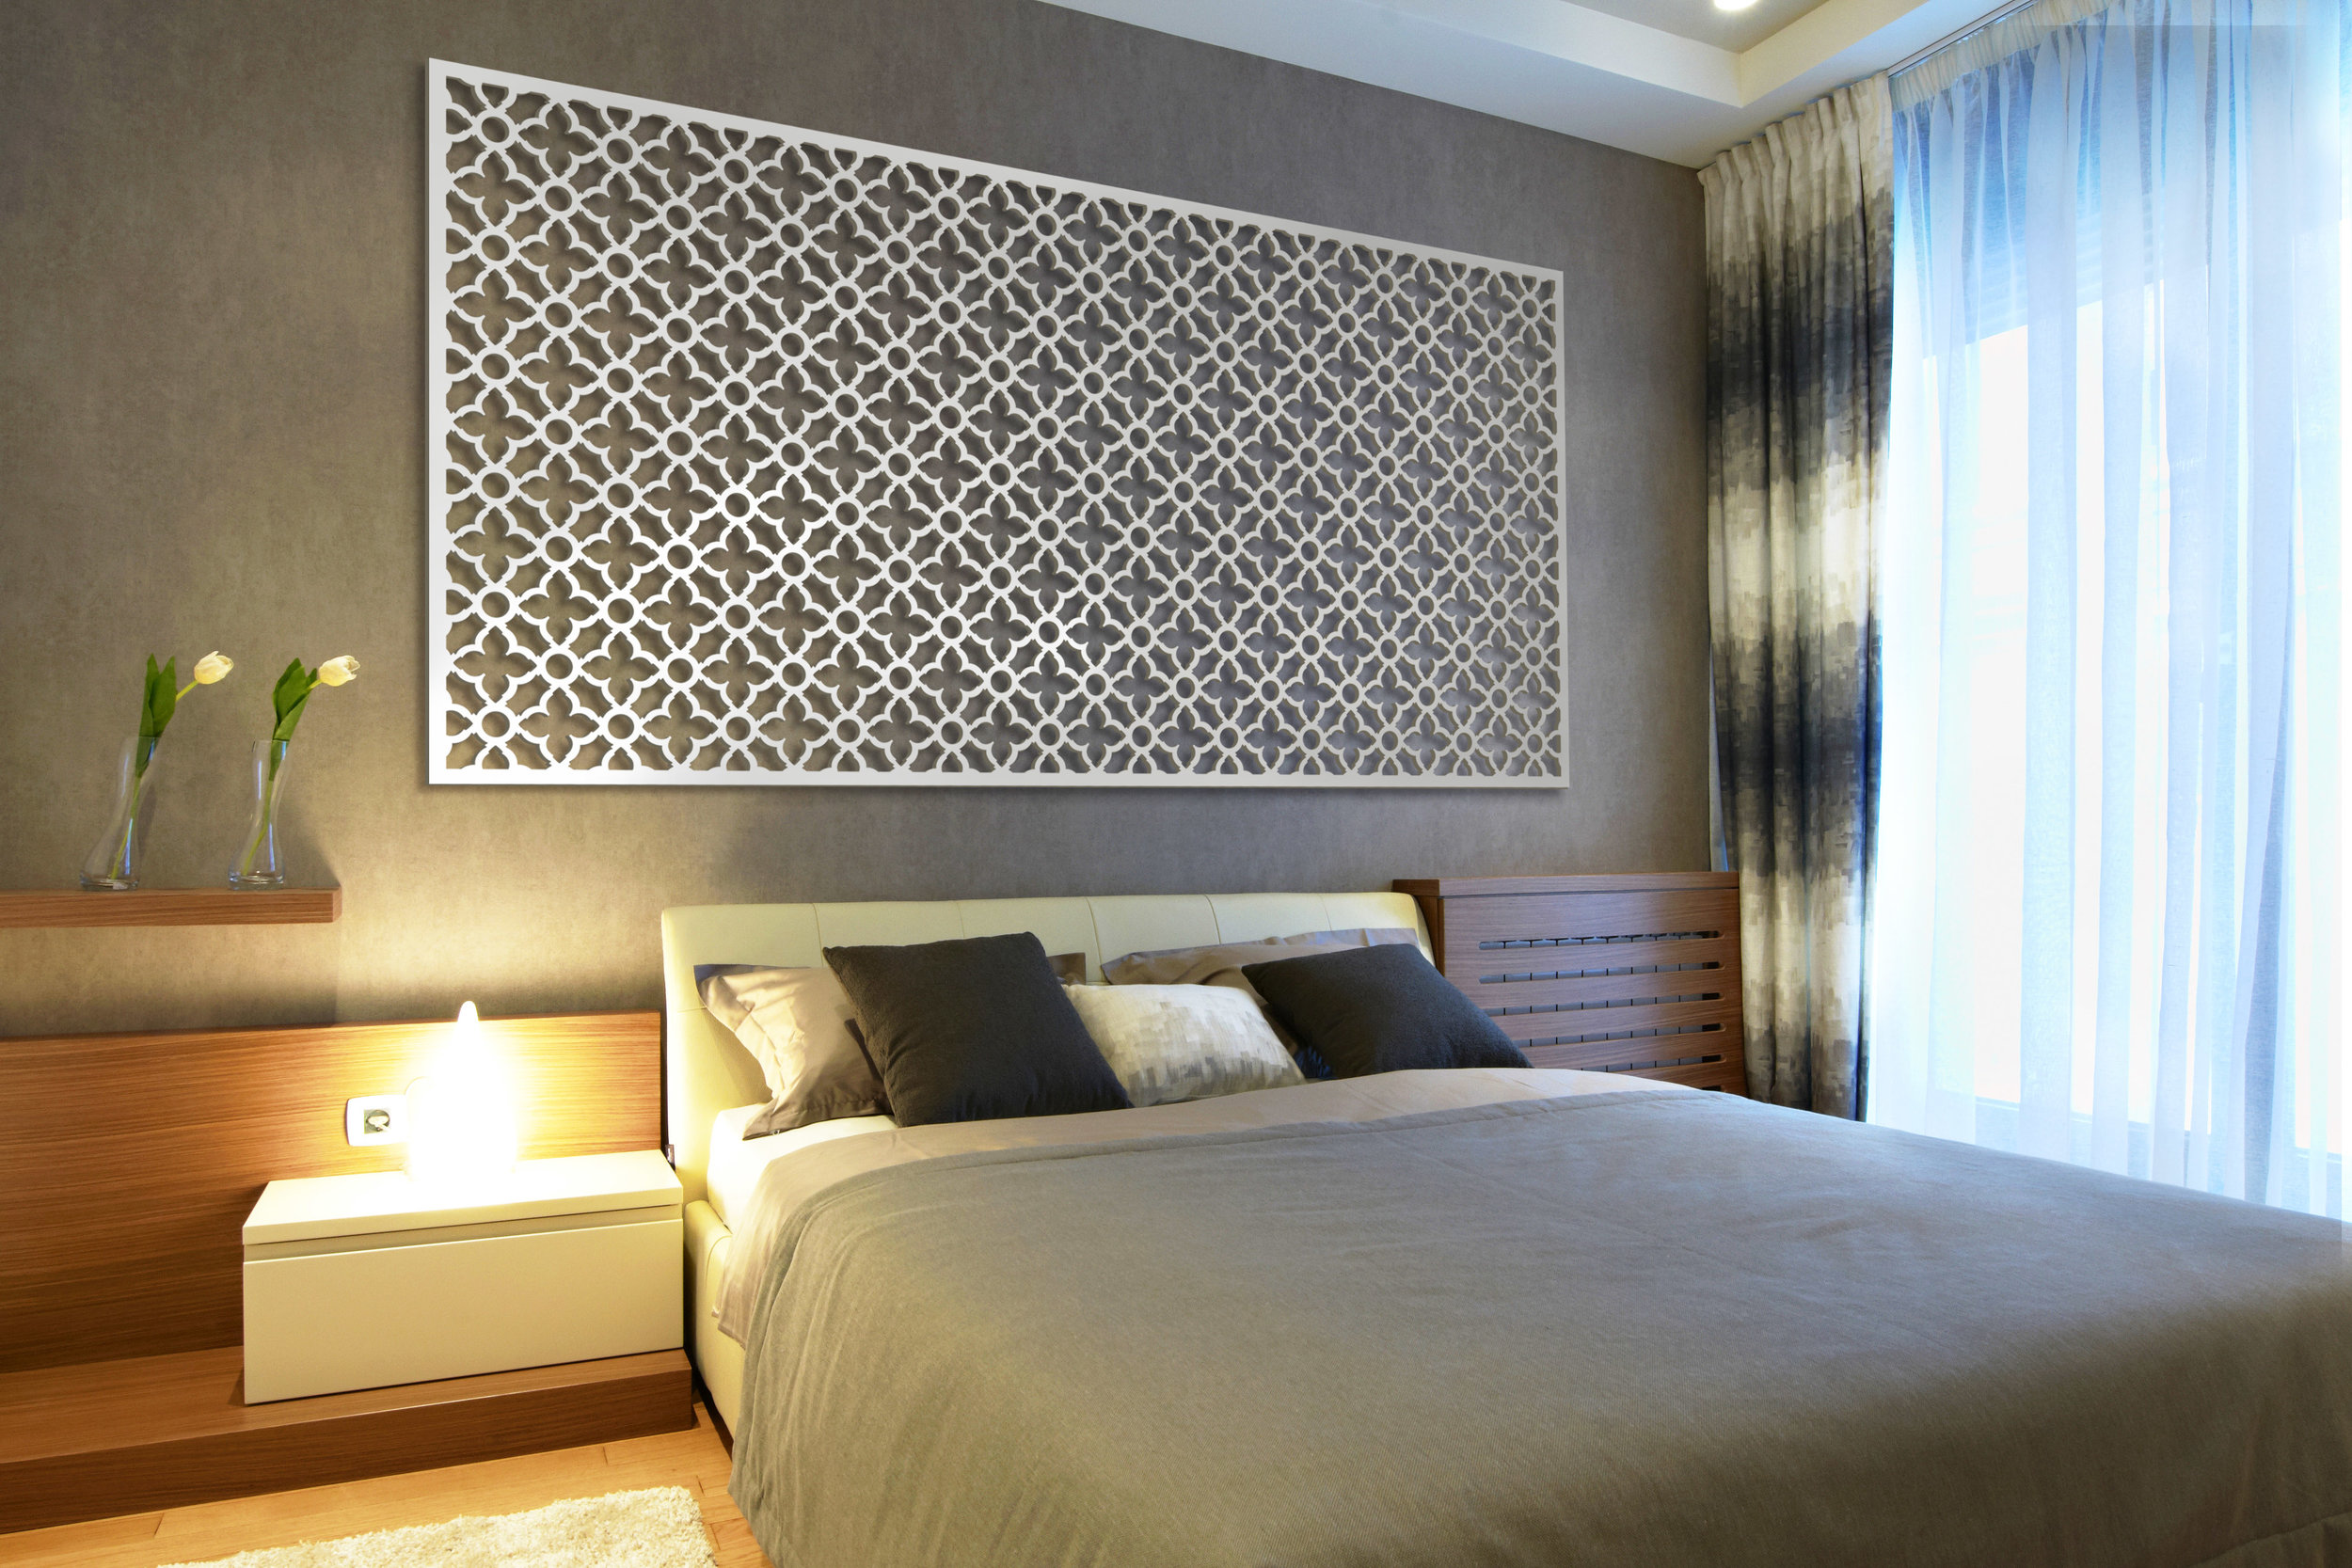 Installation Rendering C   Swift Grille decorative hotel wall panel - painted